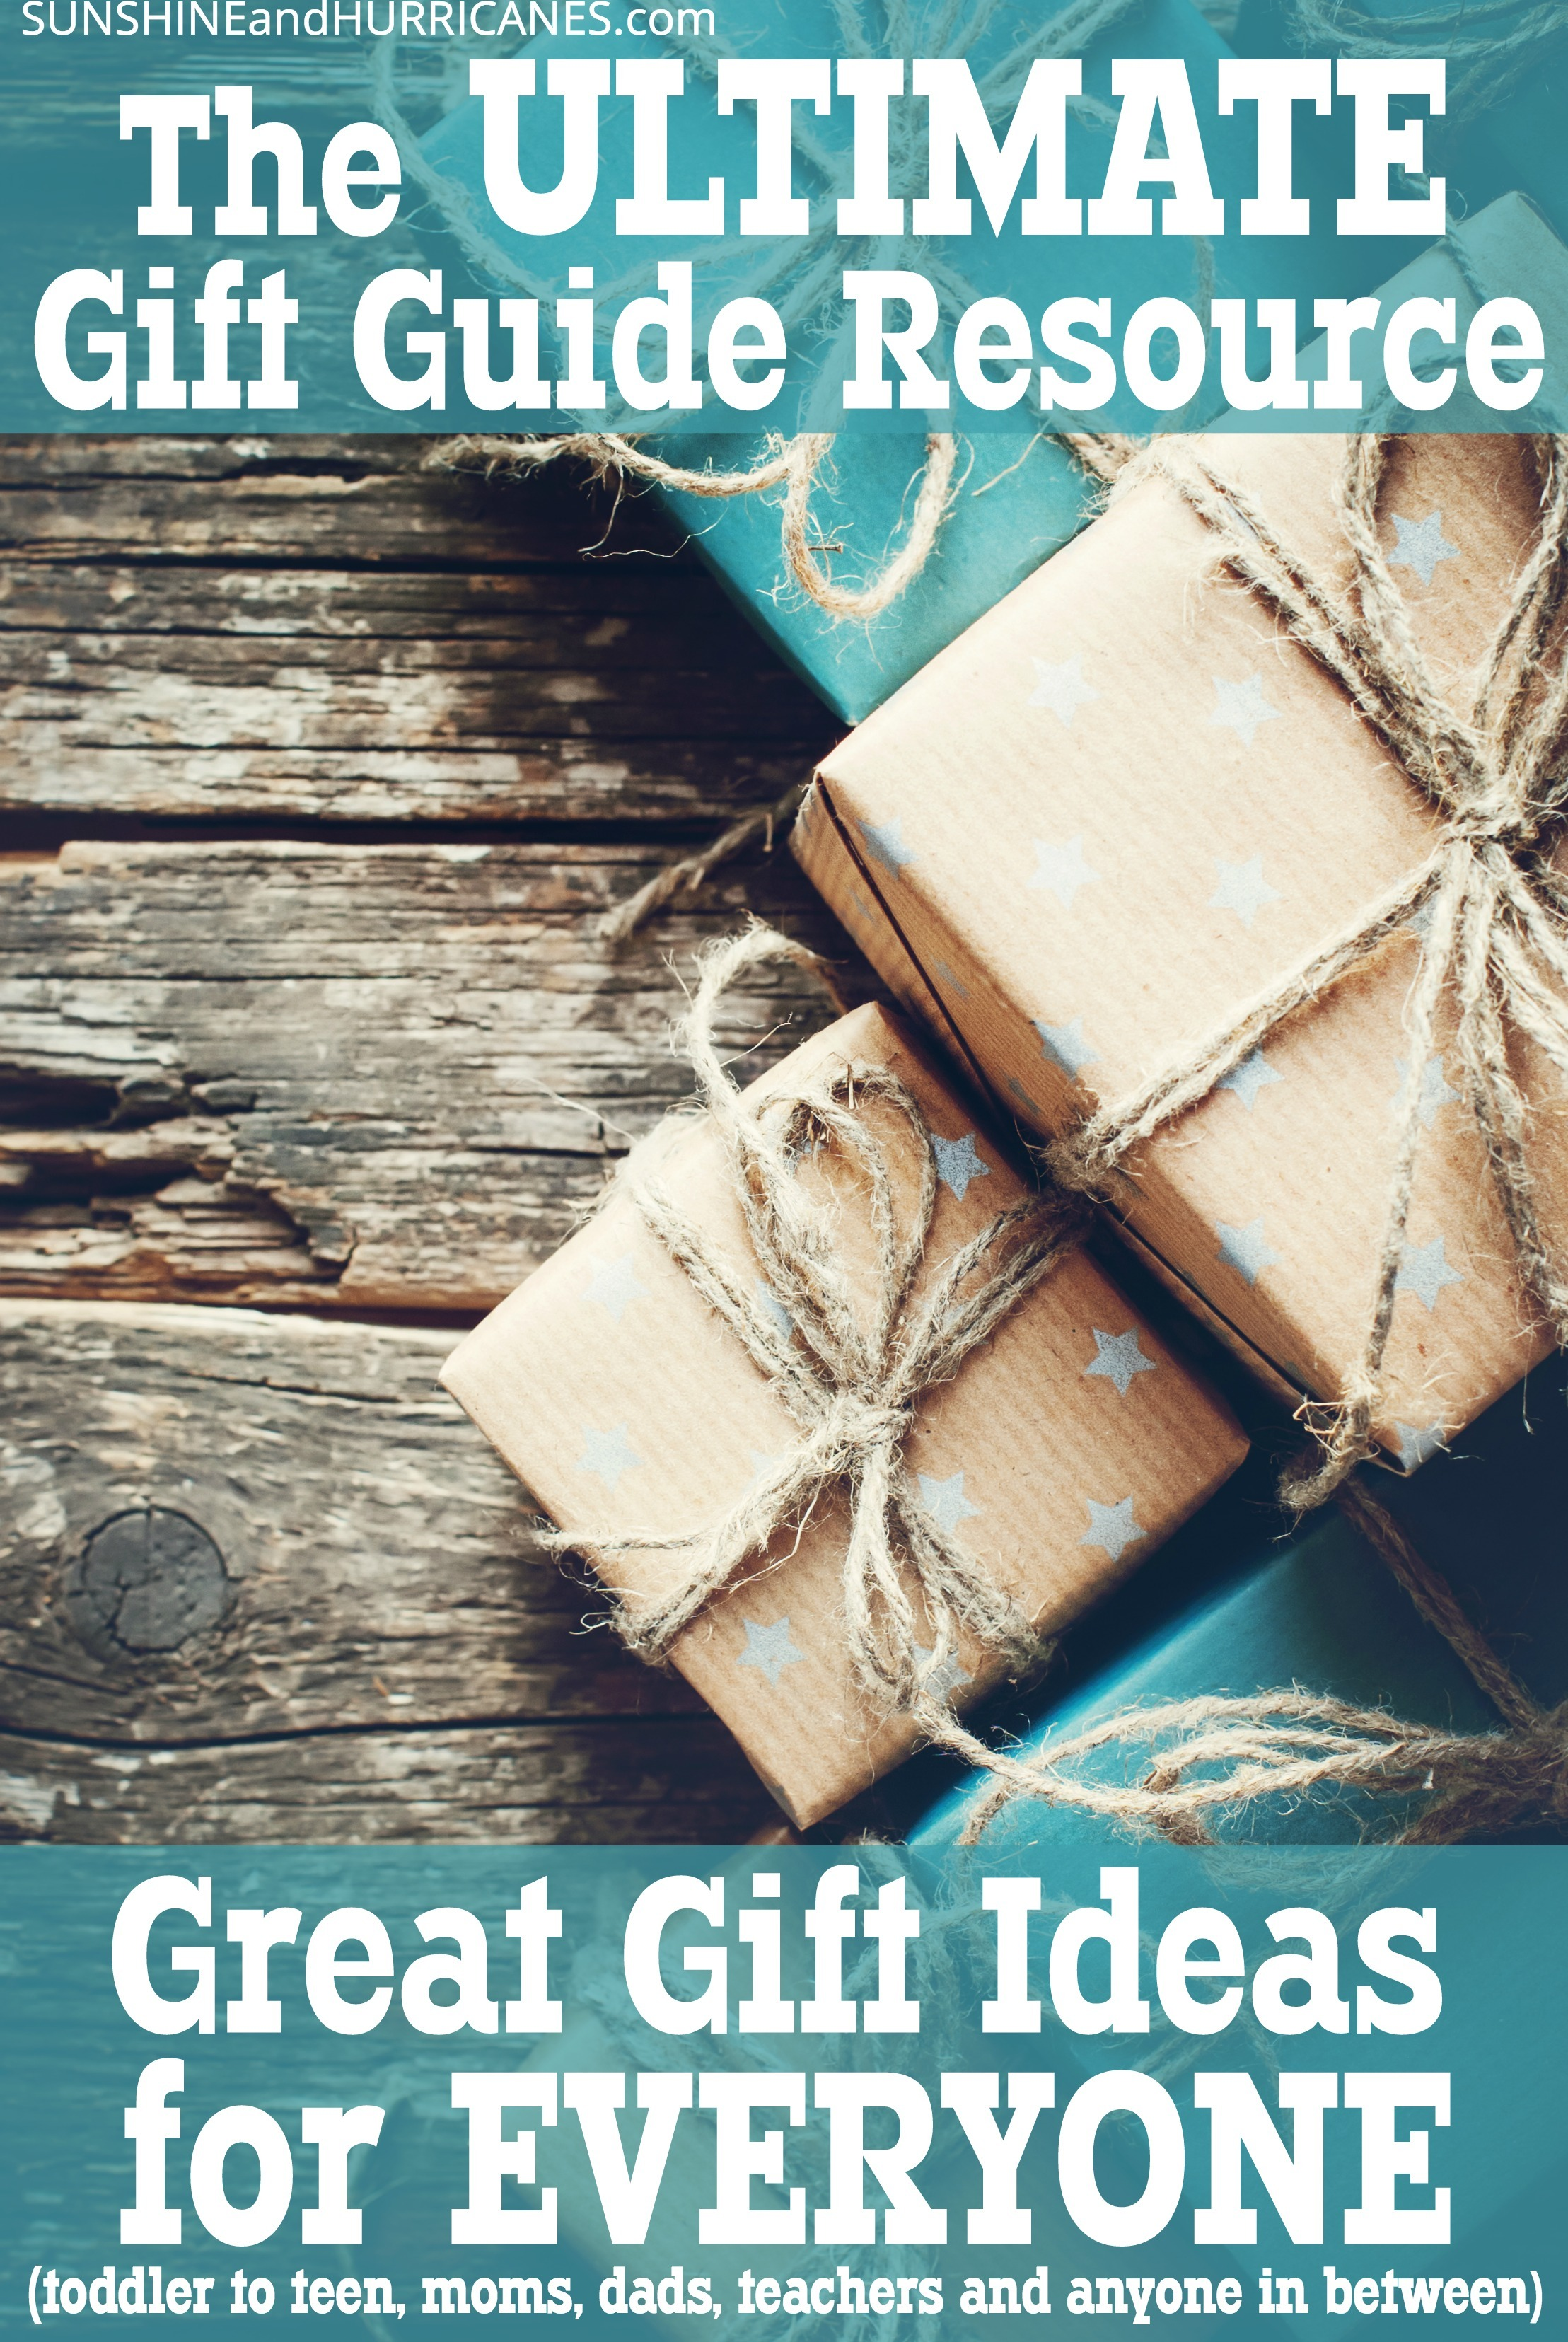 Whether you've got toddlers, teens or kids in between. Hard to buy for Moms, Dads or you just really want a meaningful teacher gift this year. You'll find unique, fun and affordable gift ideas in this master Gift Guide. There is something for everyone and we'll help you find it. Ultimate Gift Guide SunshineandHurricanes.com